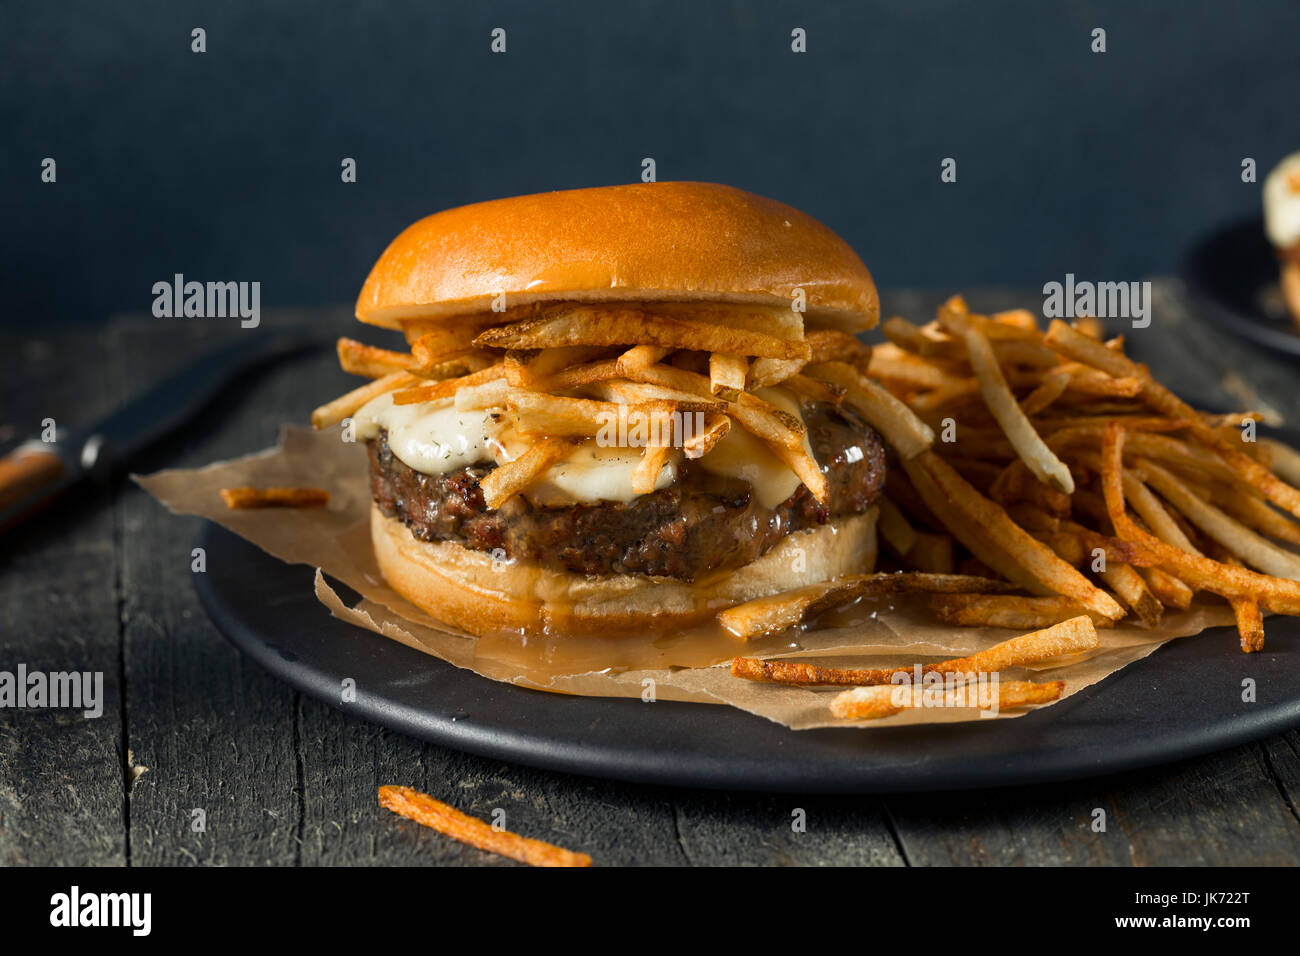 Homemade Poutine Hamburger with Fries Gravy and Cheese Curds - Stock Image